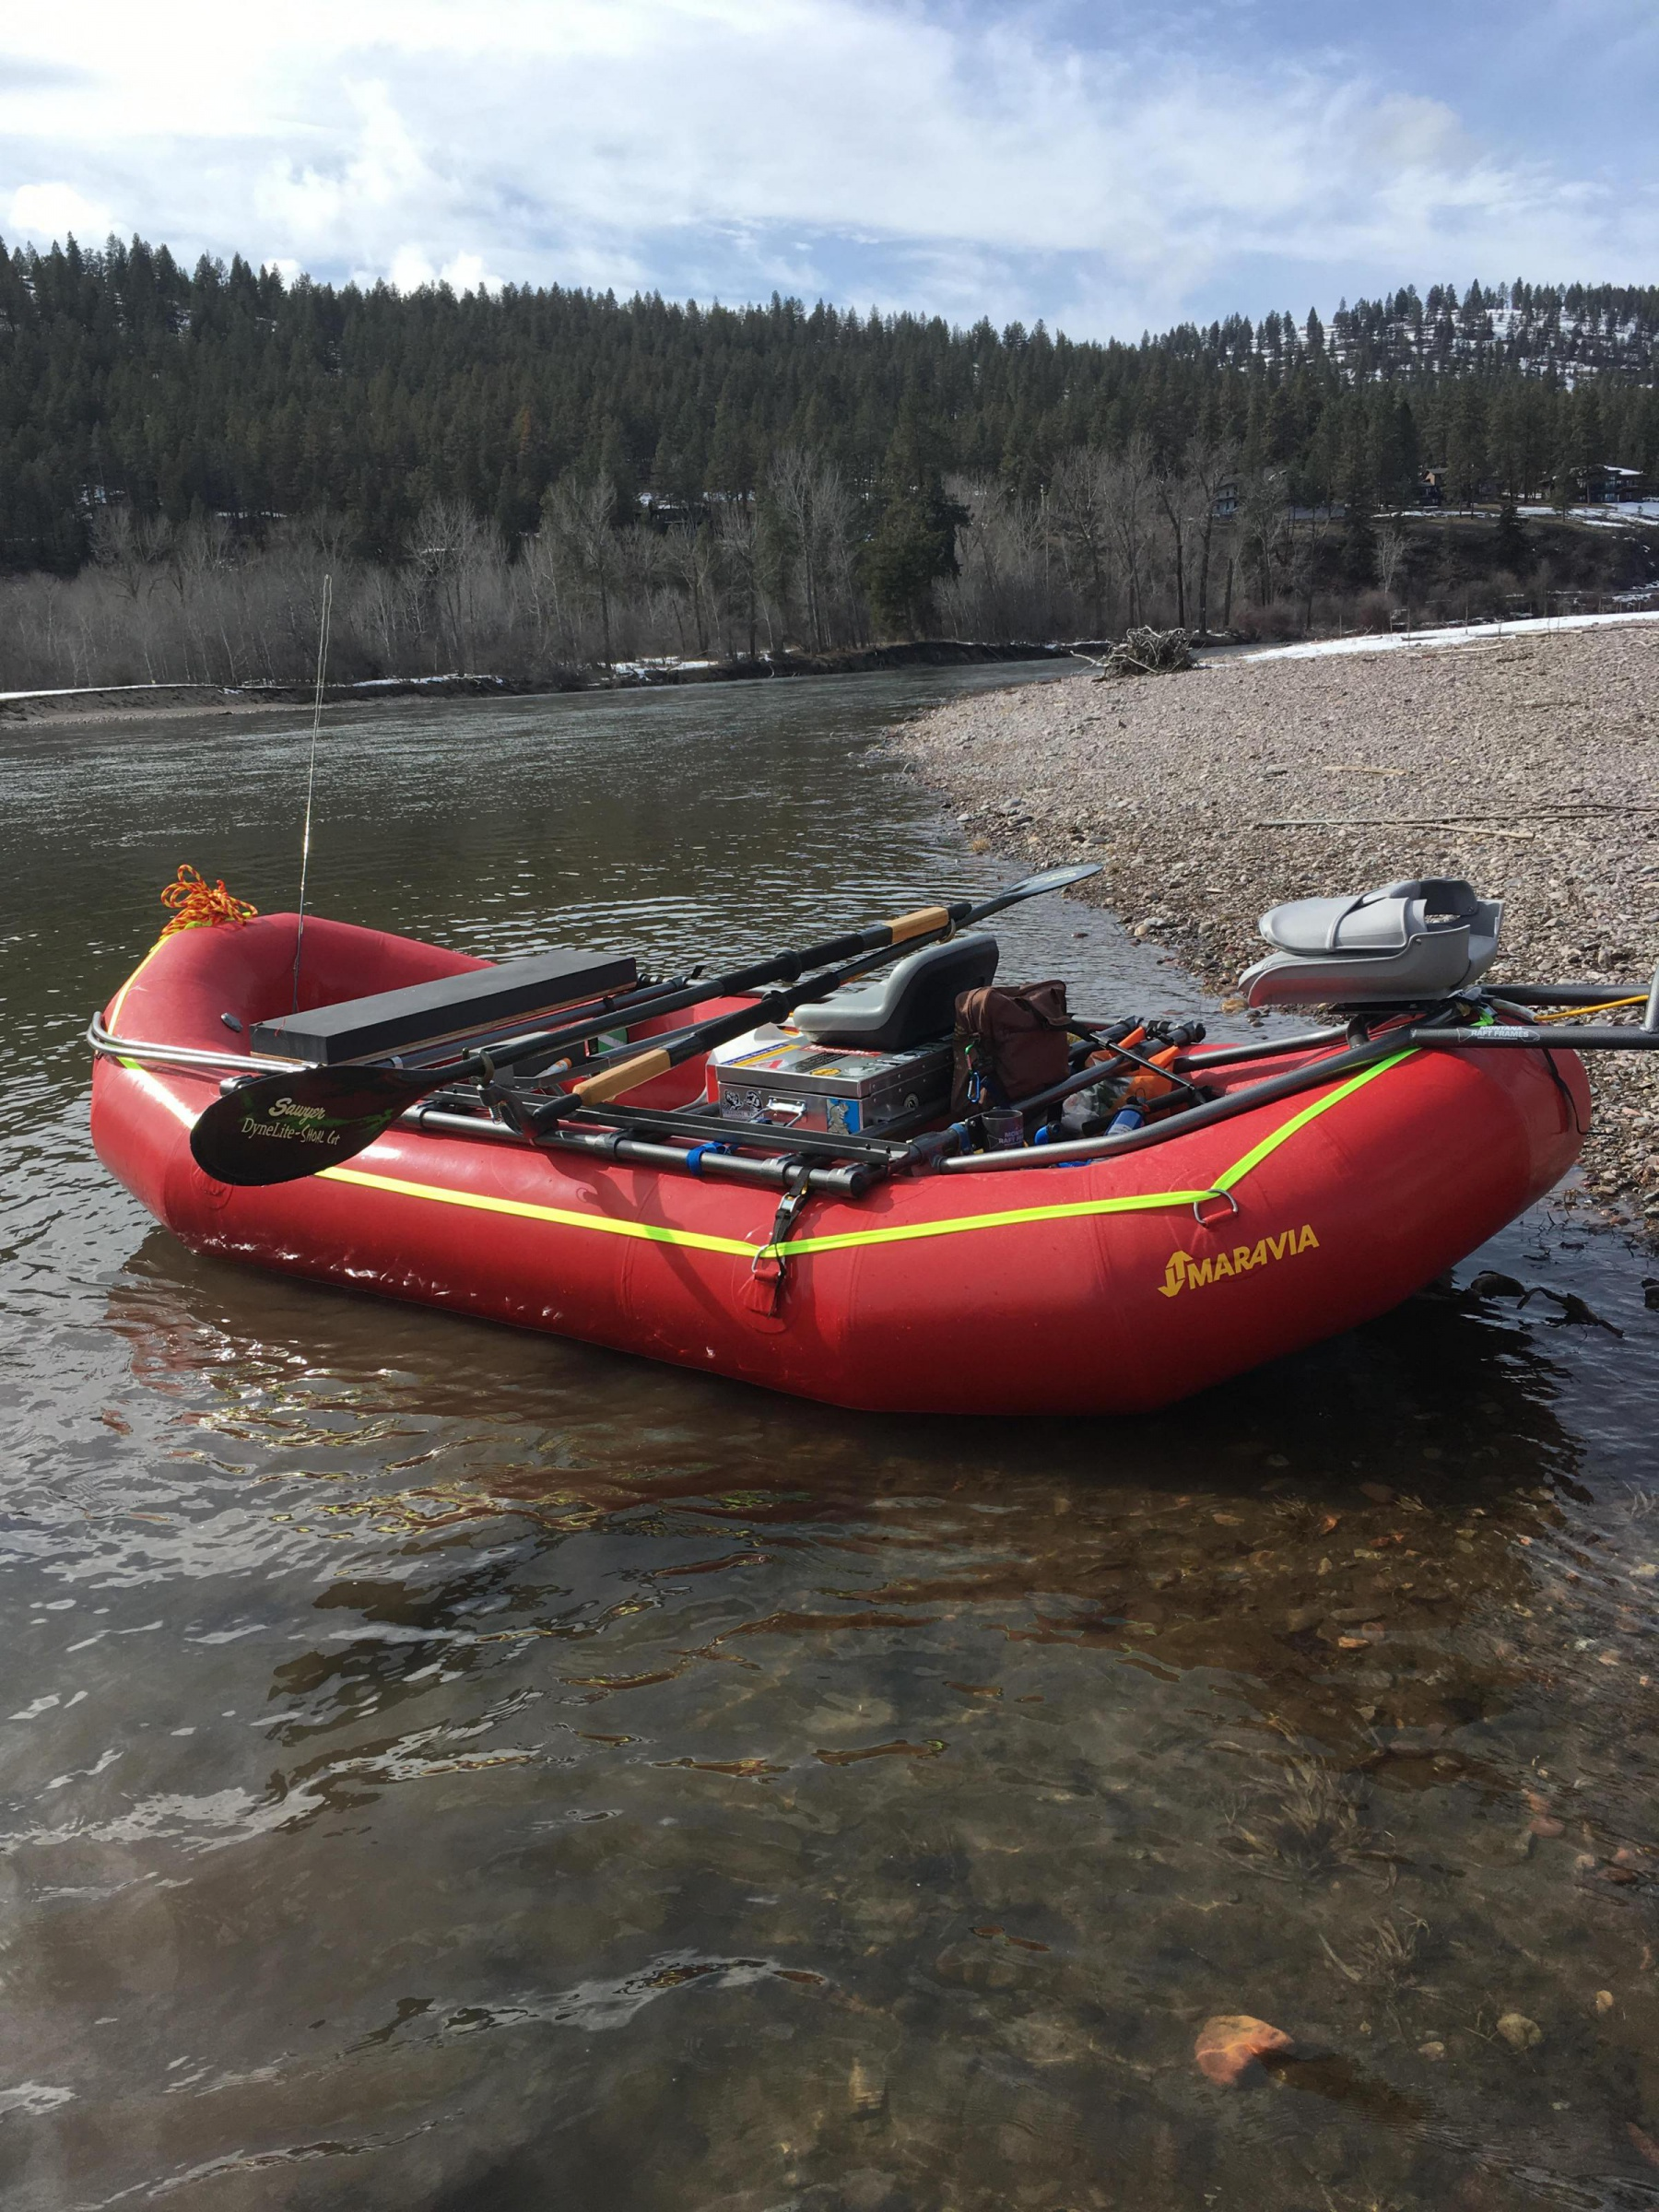 Raft Porn Needed -Let's see them rigs!!! - Page 135